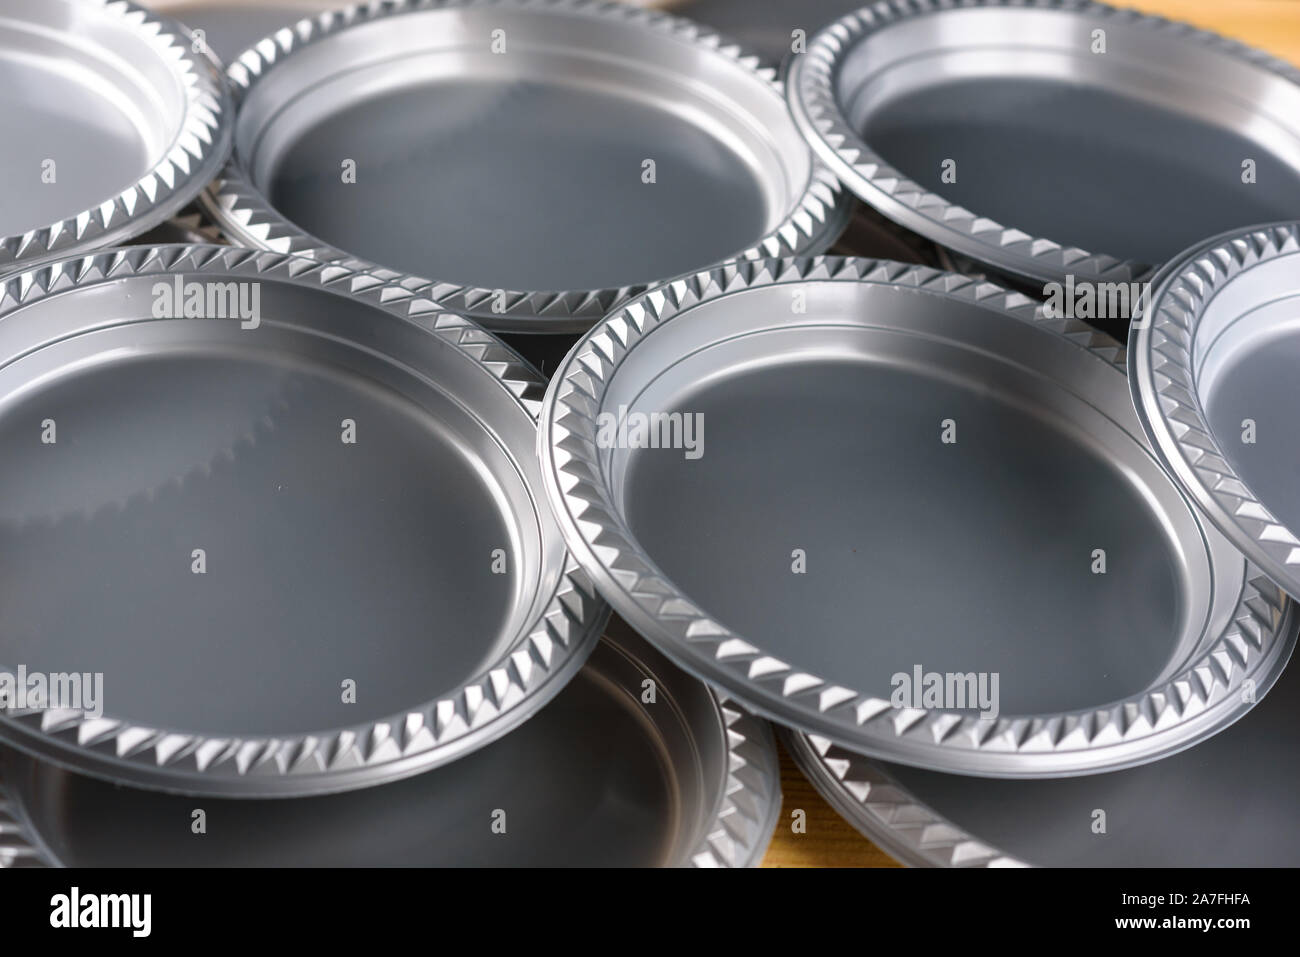 A group of disposable plastic dinner plates for wedding, party, birthday, catering. Stock Photo